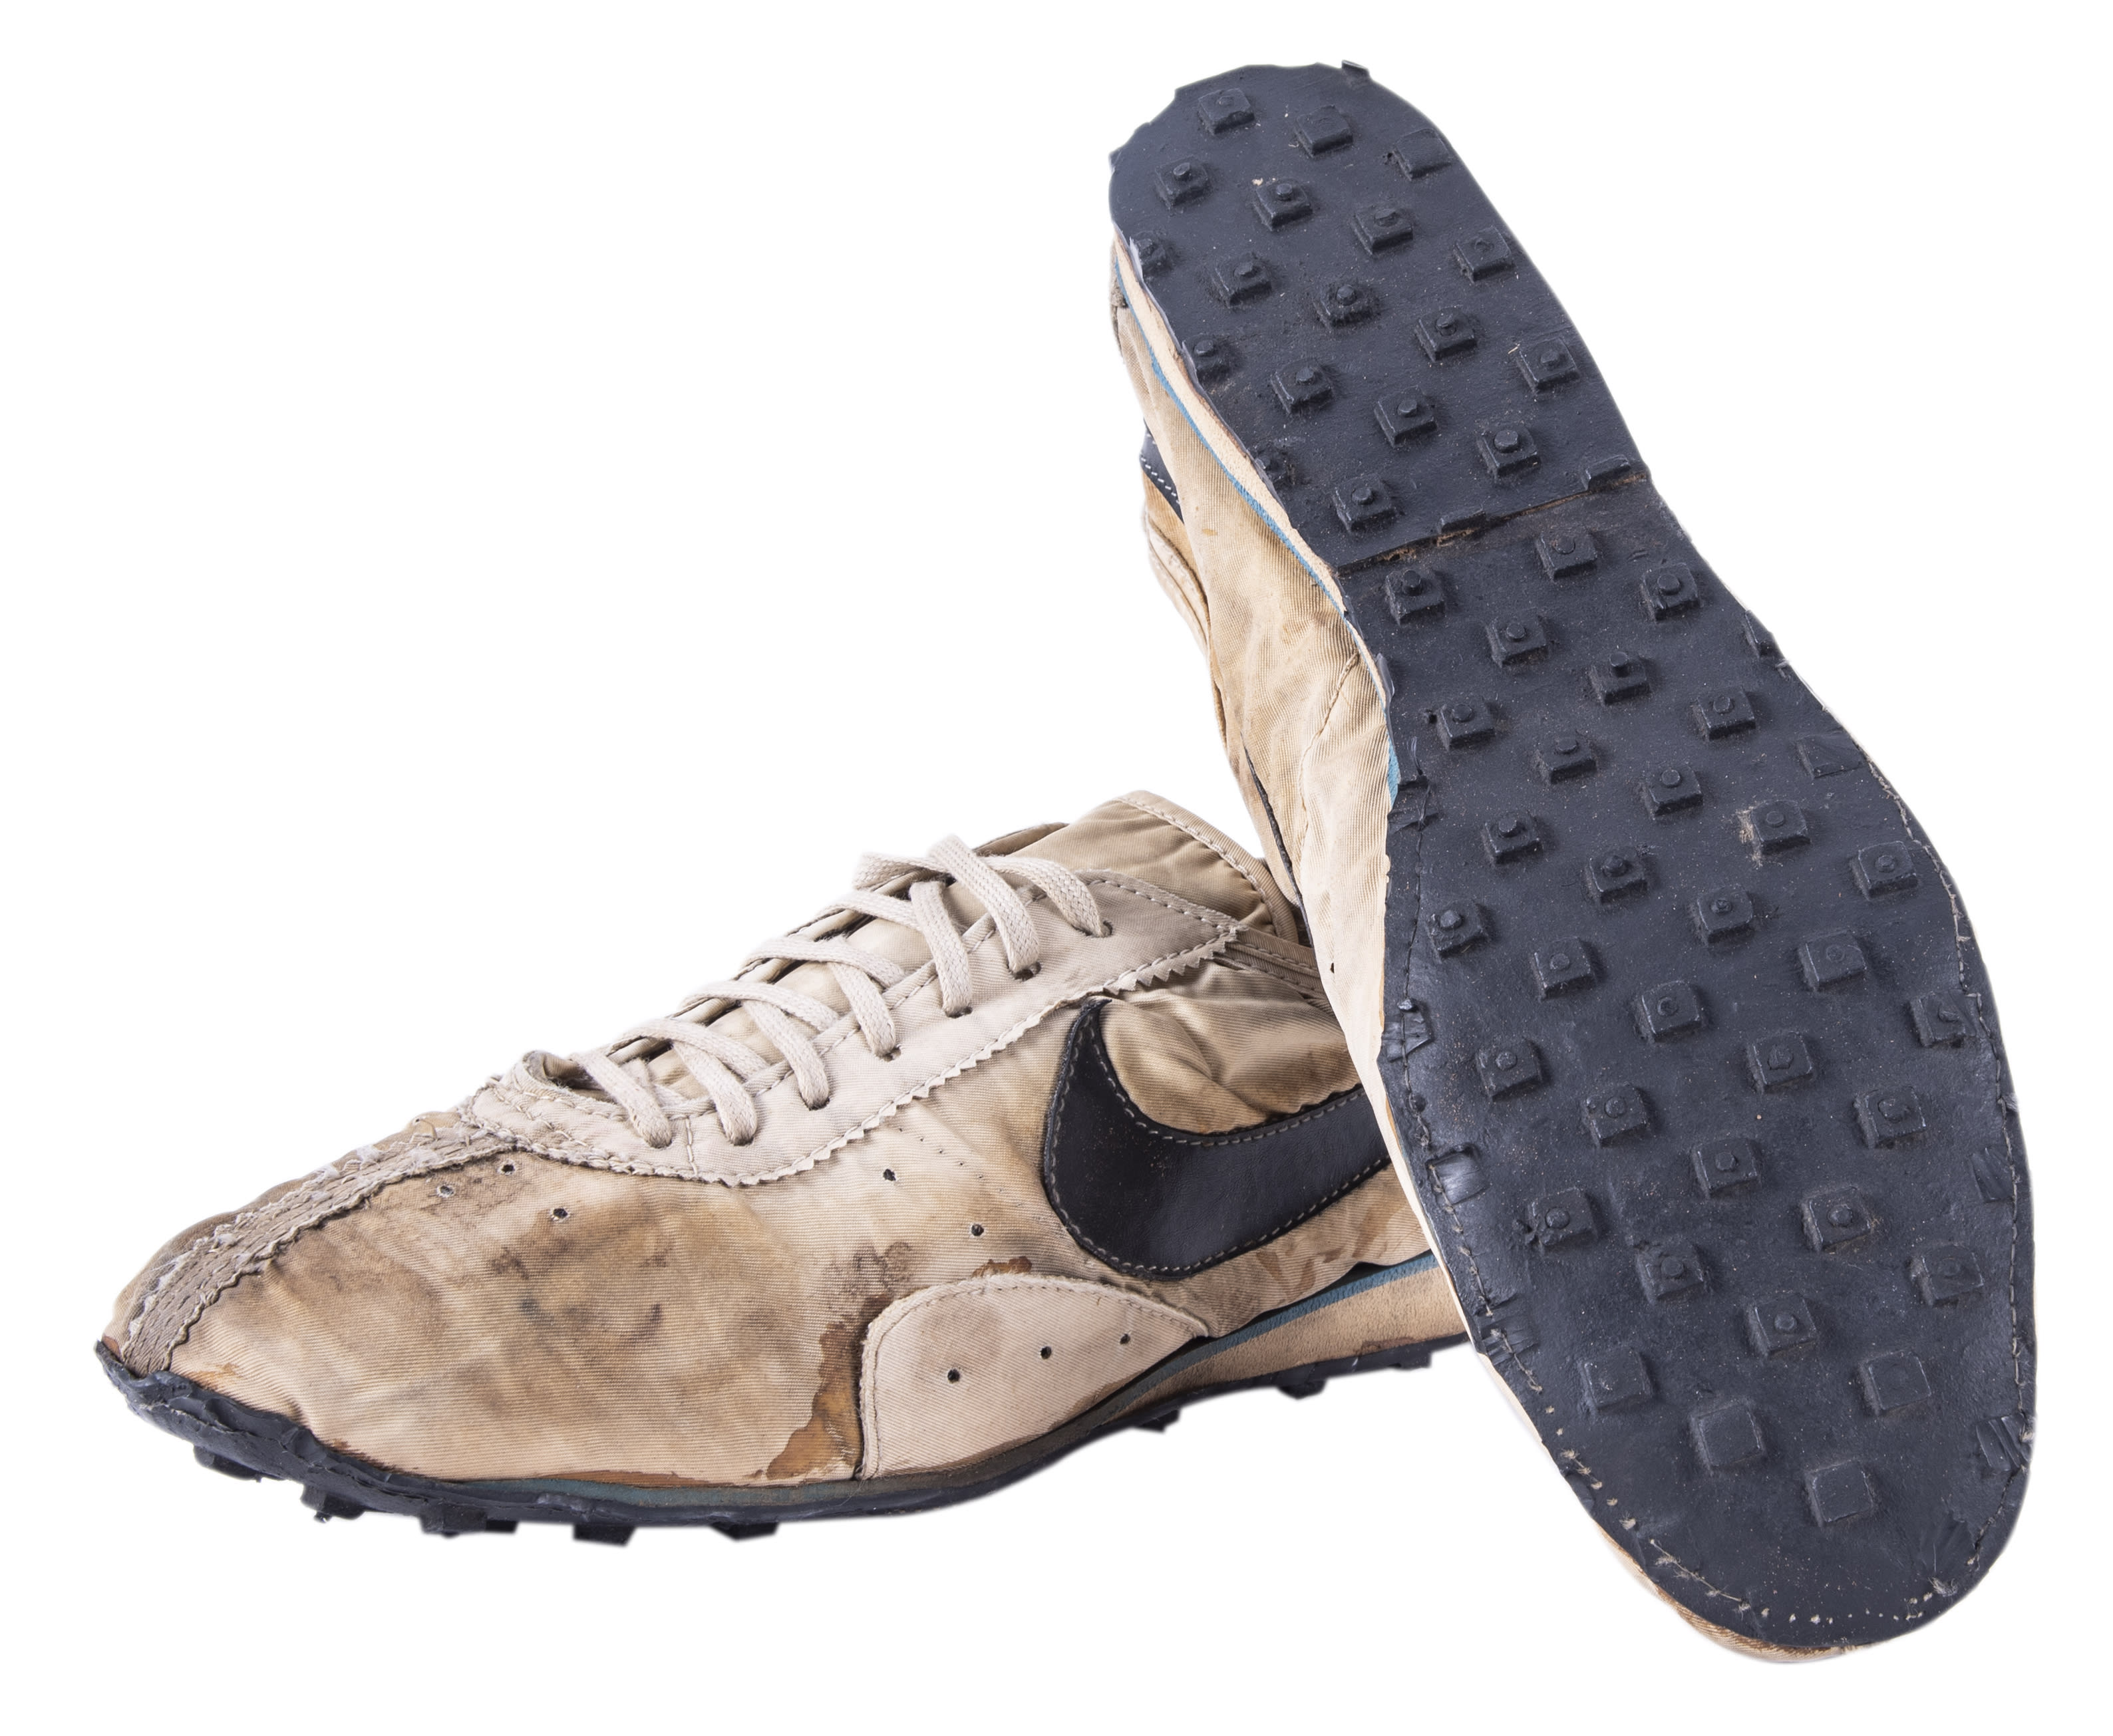 nike-moon-shoes-goldin-auctions